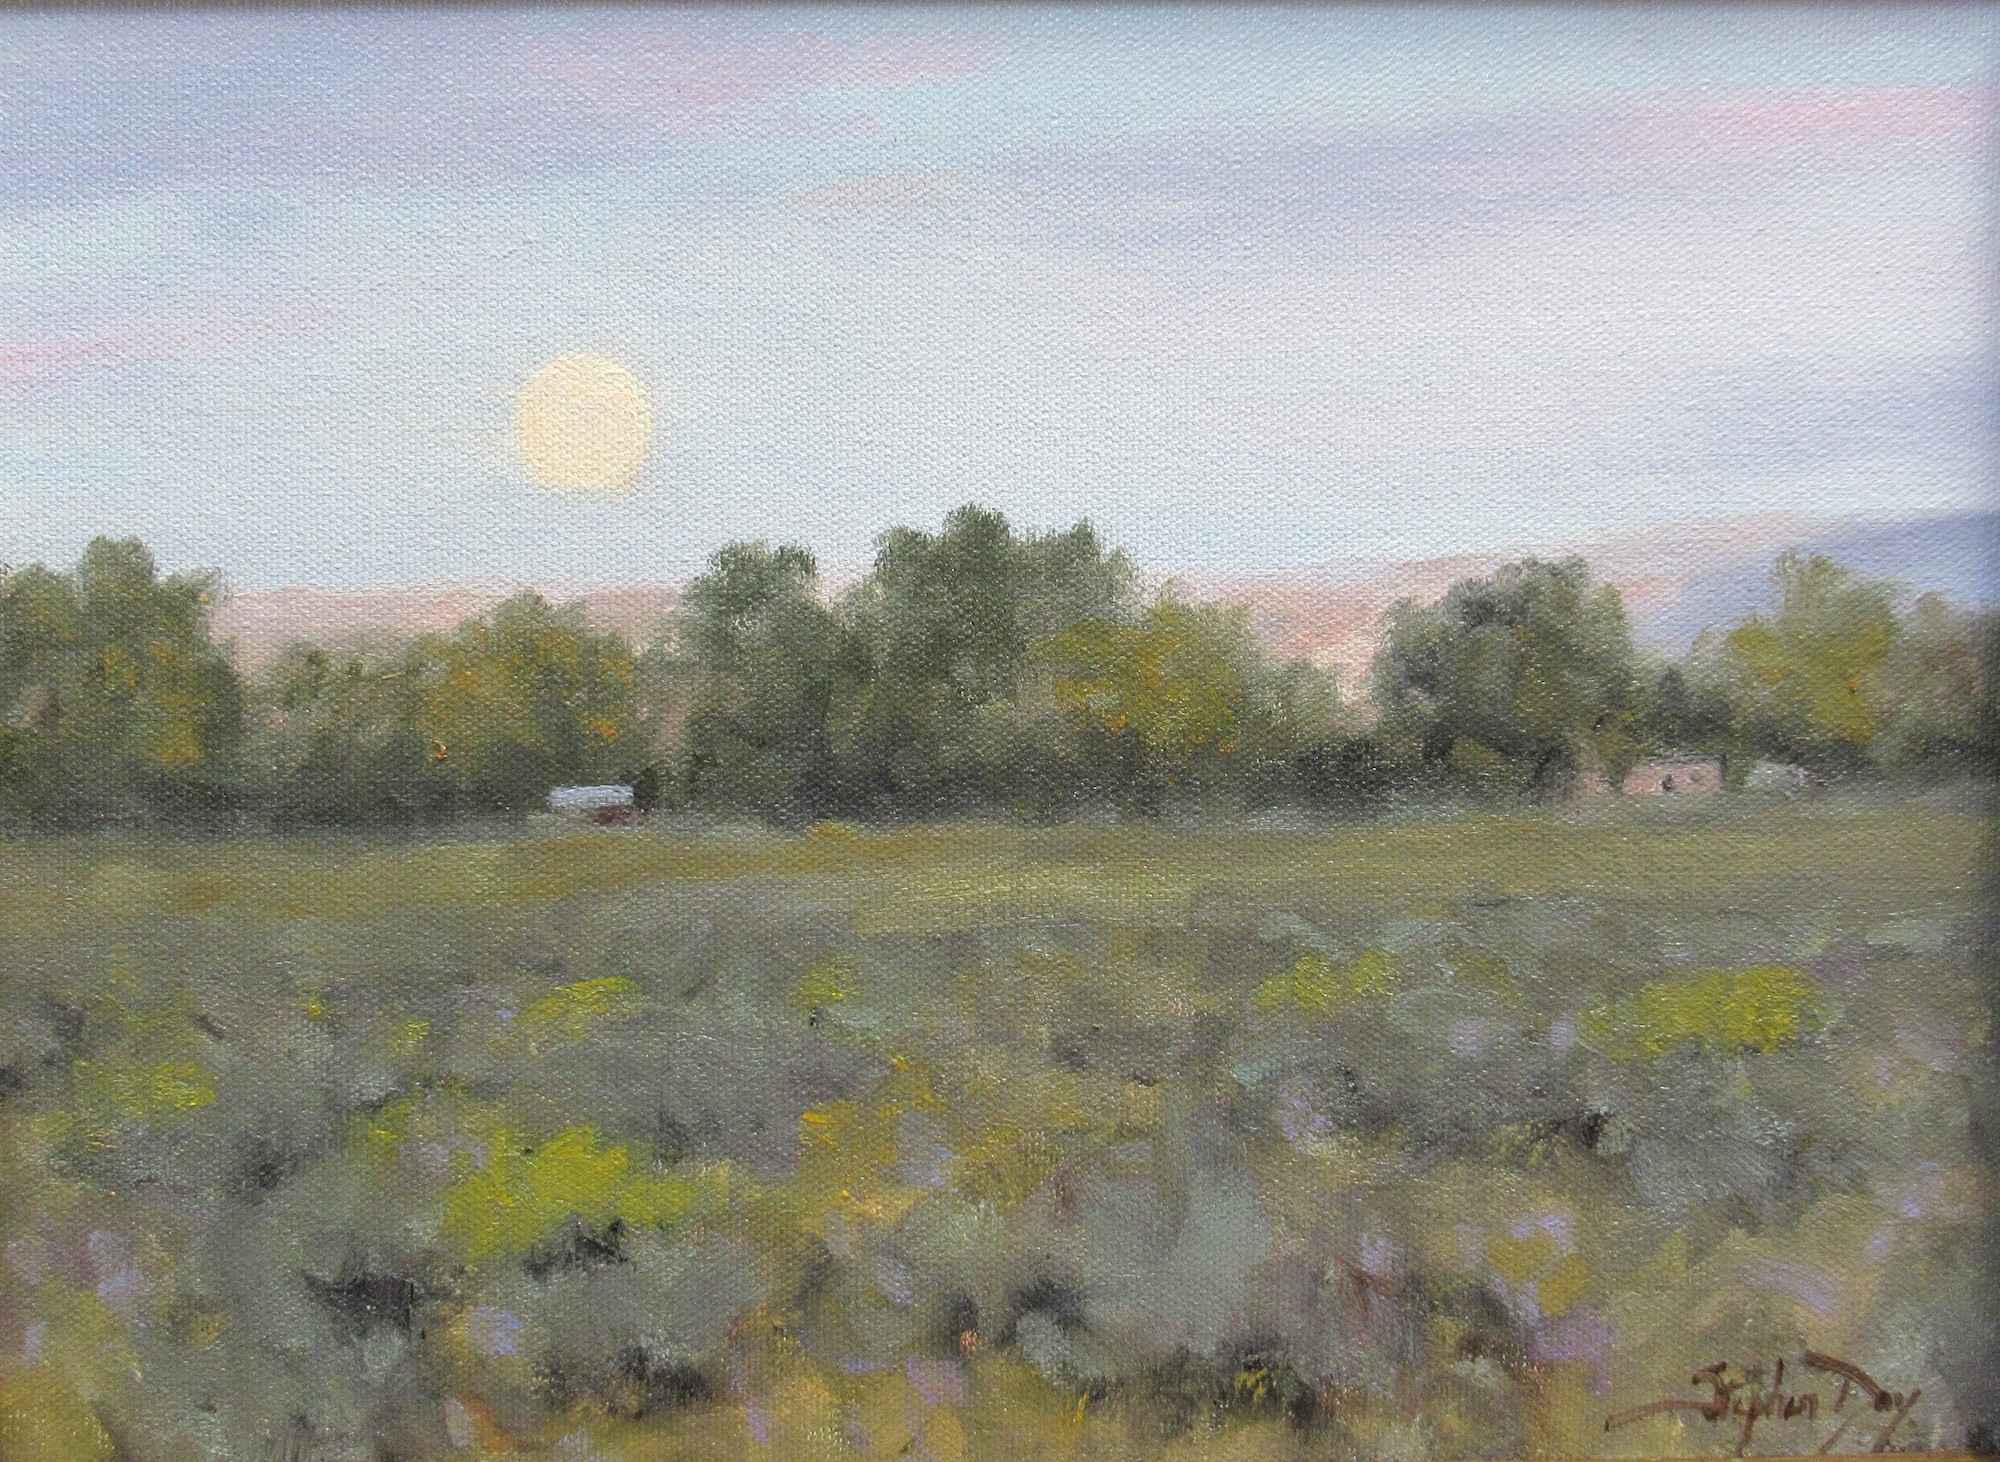 Northern New Mexico M... by  Stephen Day - Masterpiece Online